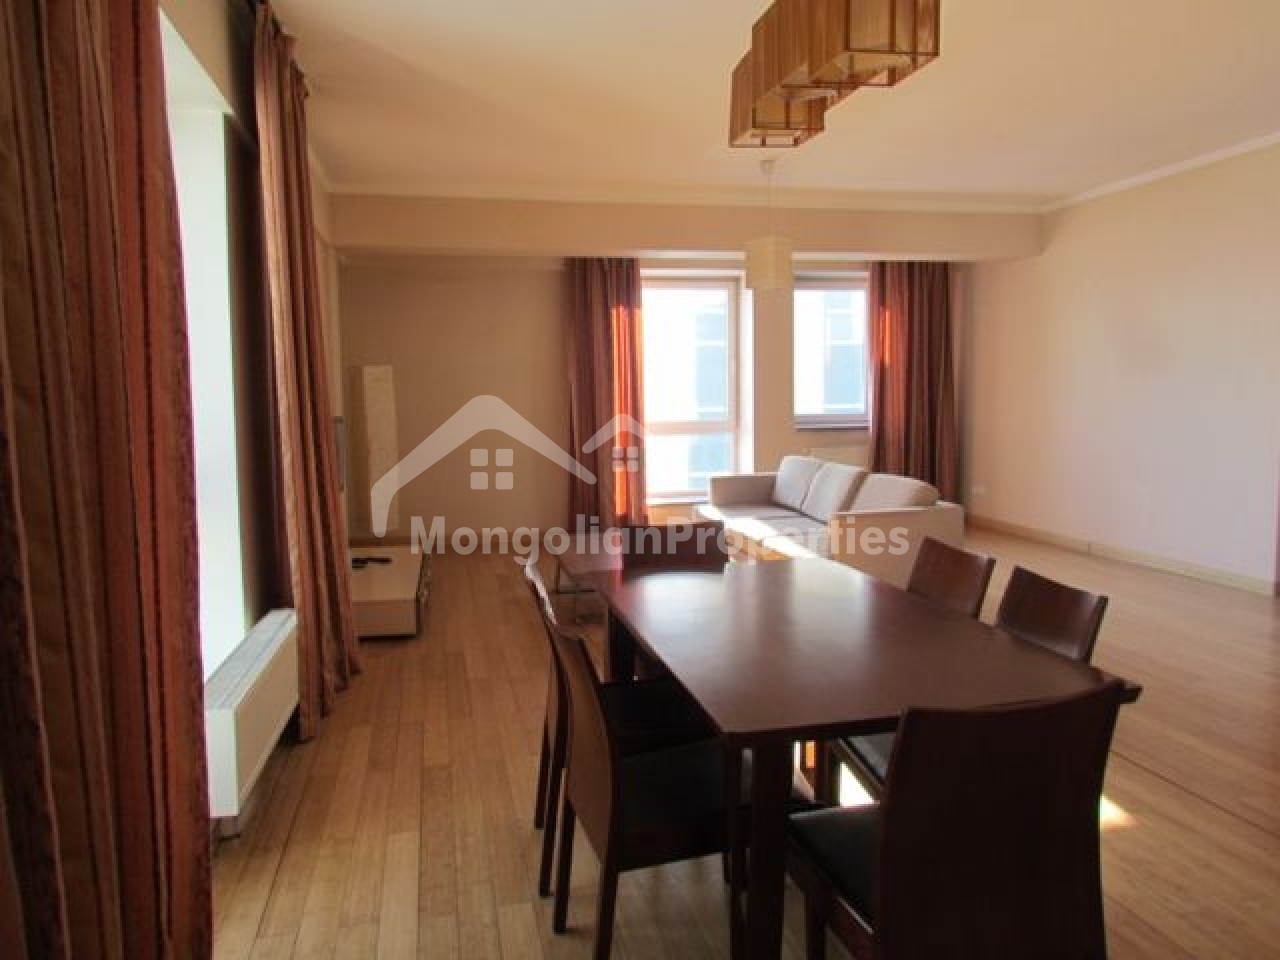 Investment Opportunity! Hearth of the city, Beautiful 3 bedroom apartment for sale in Park View Residence